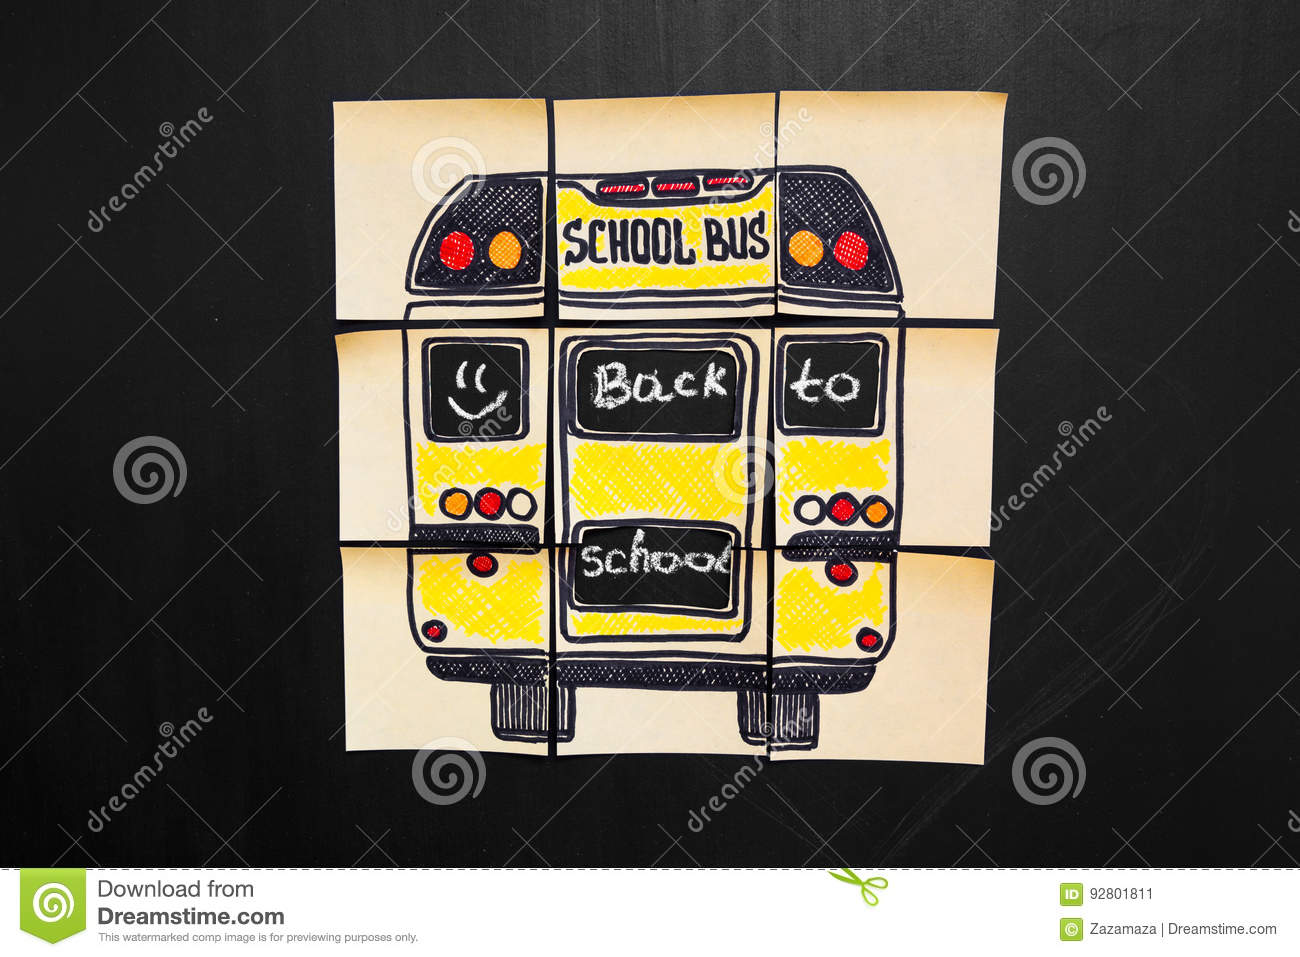 Back to school background with title `Back to school` and `school bus` written on the yellow pieces of paper